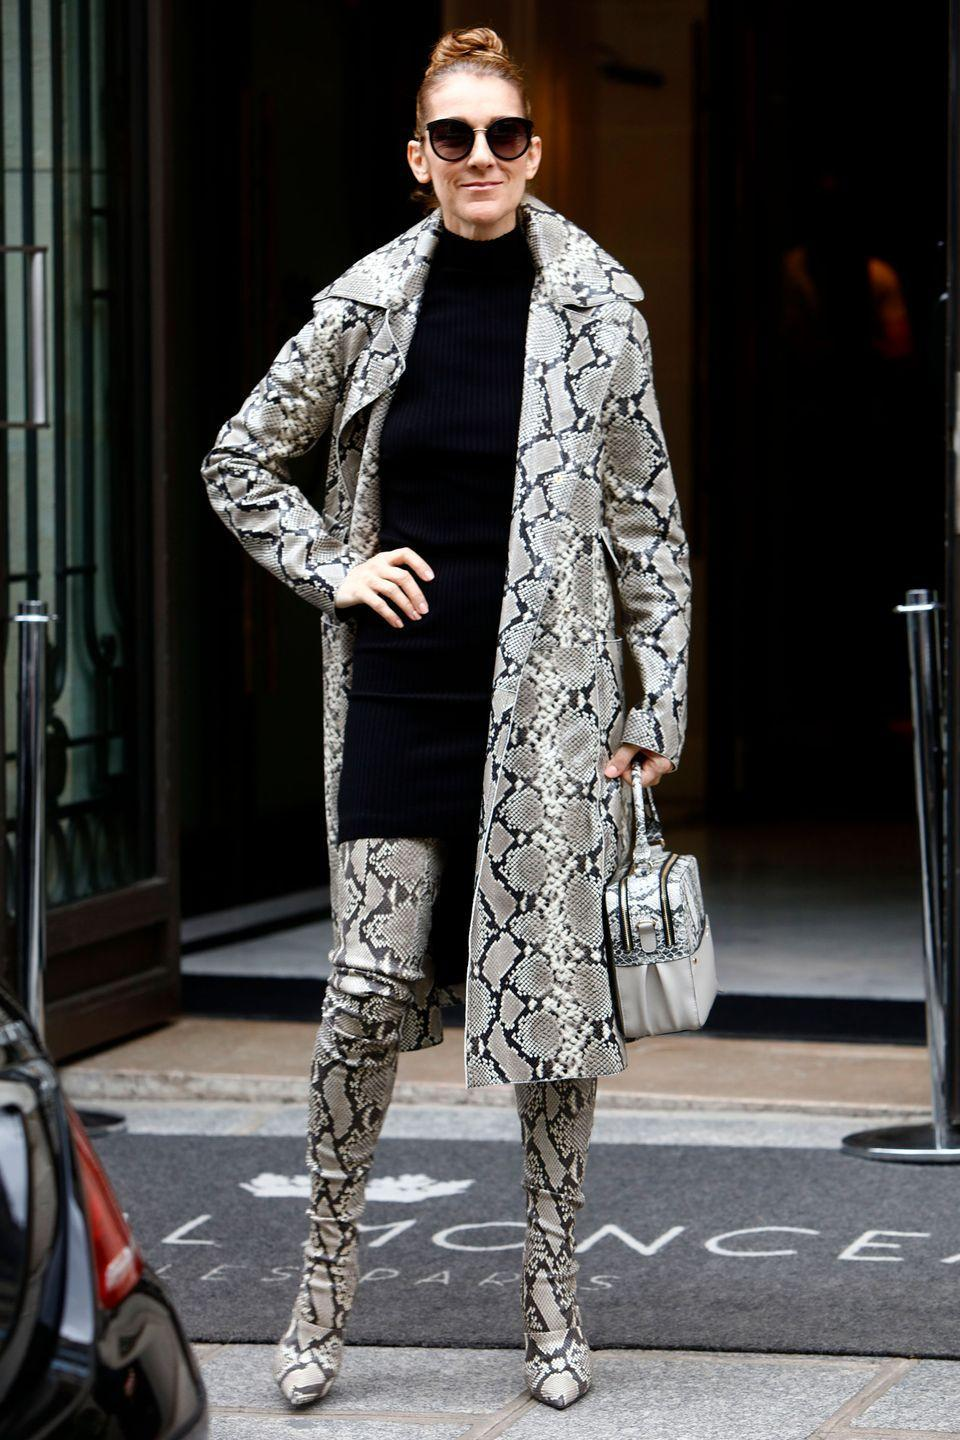 <p>In a snakeskin coat, matching thigh-high boots, and bag while leaving the Hotel Royal Monceau in Paris. </p>